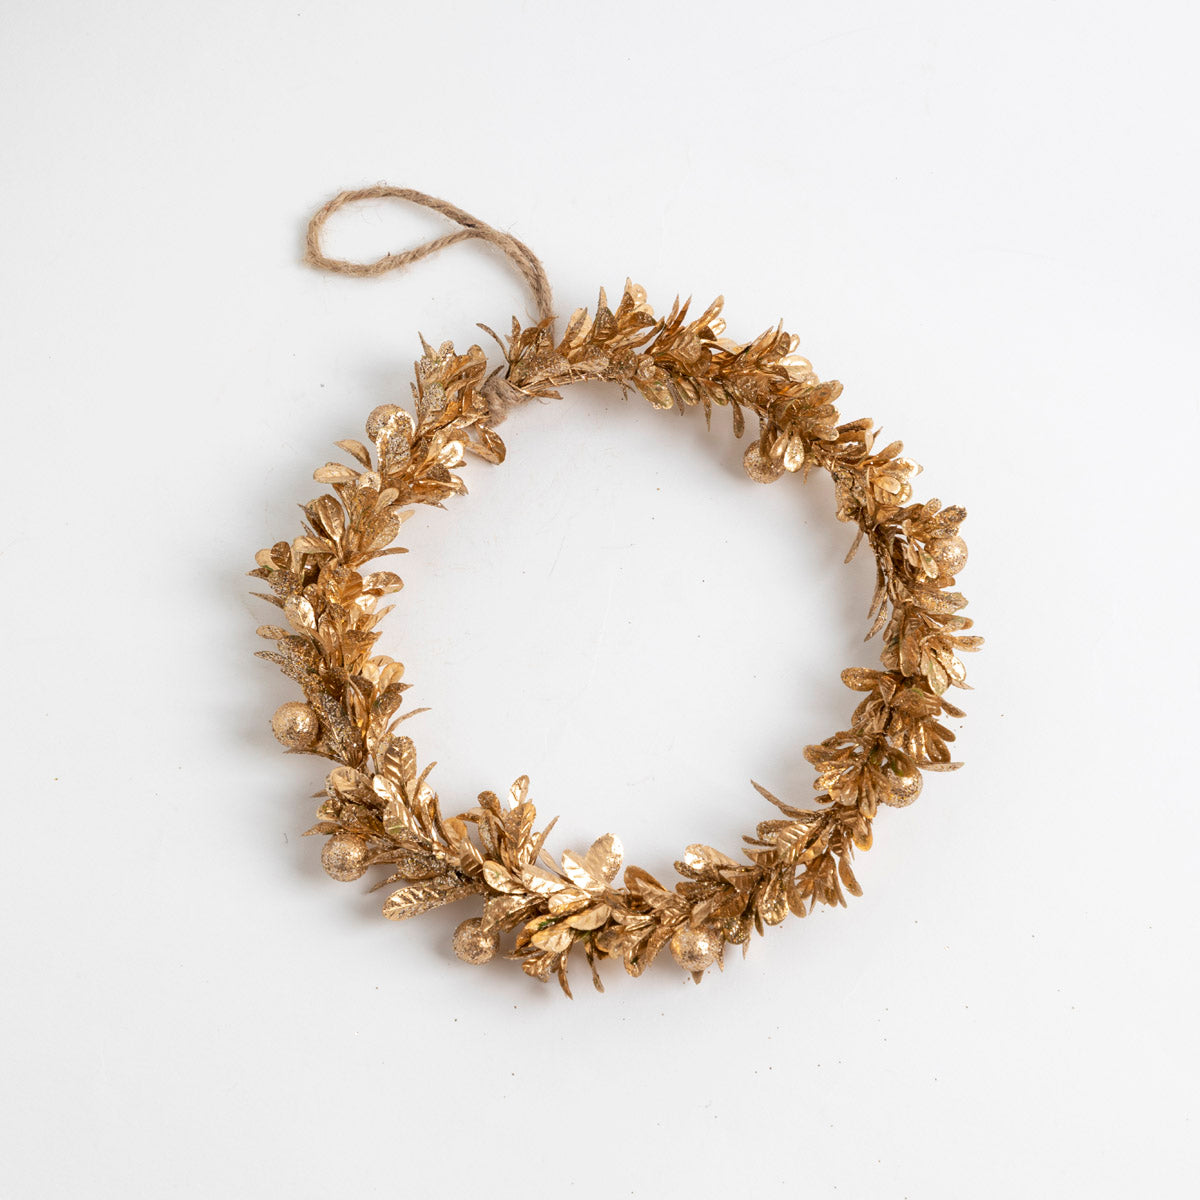 Round Wreath Ornament